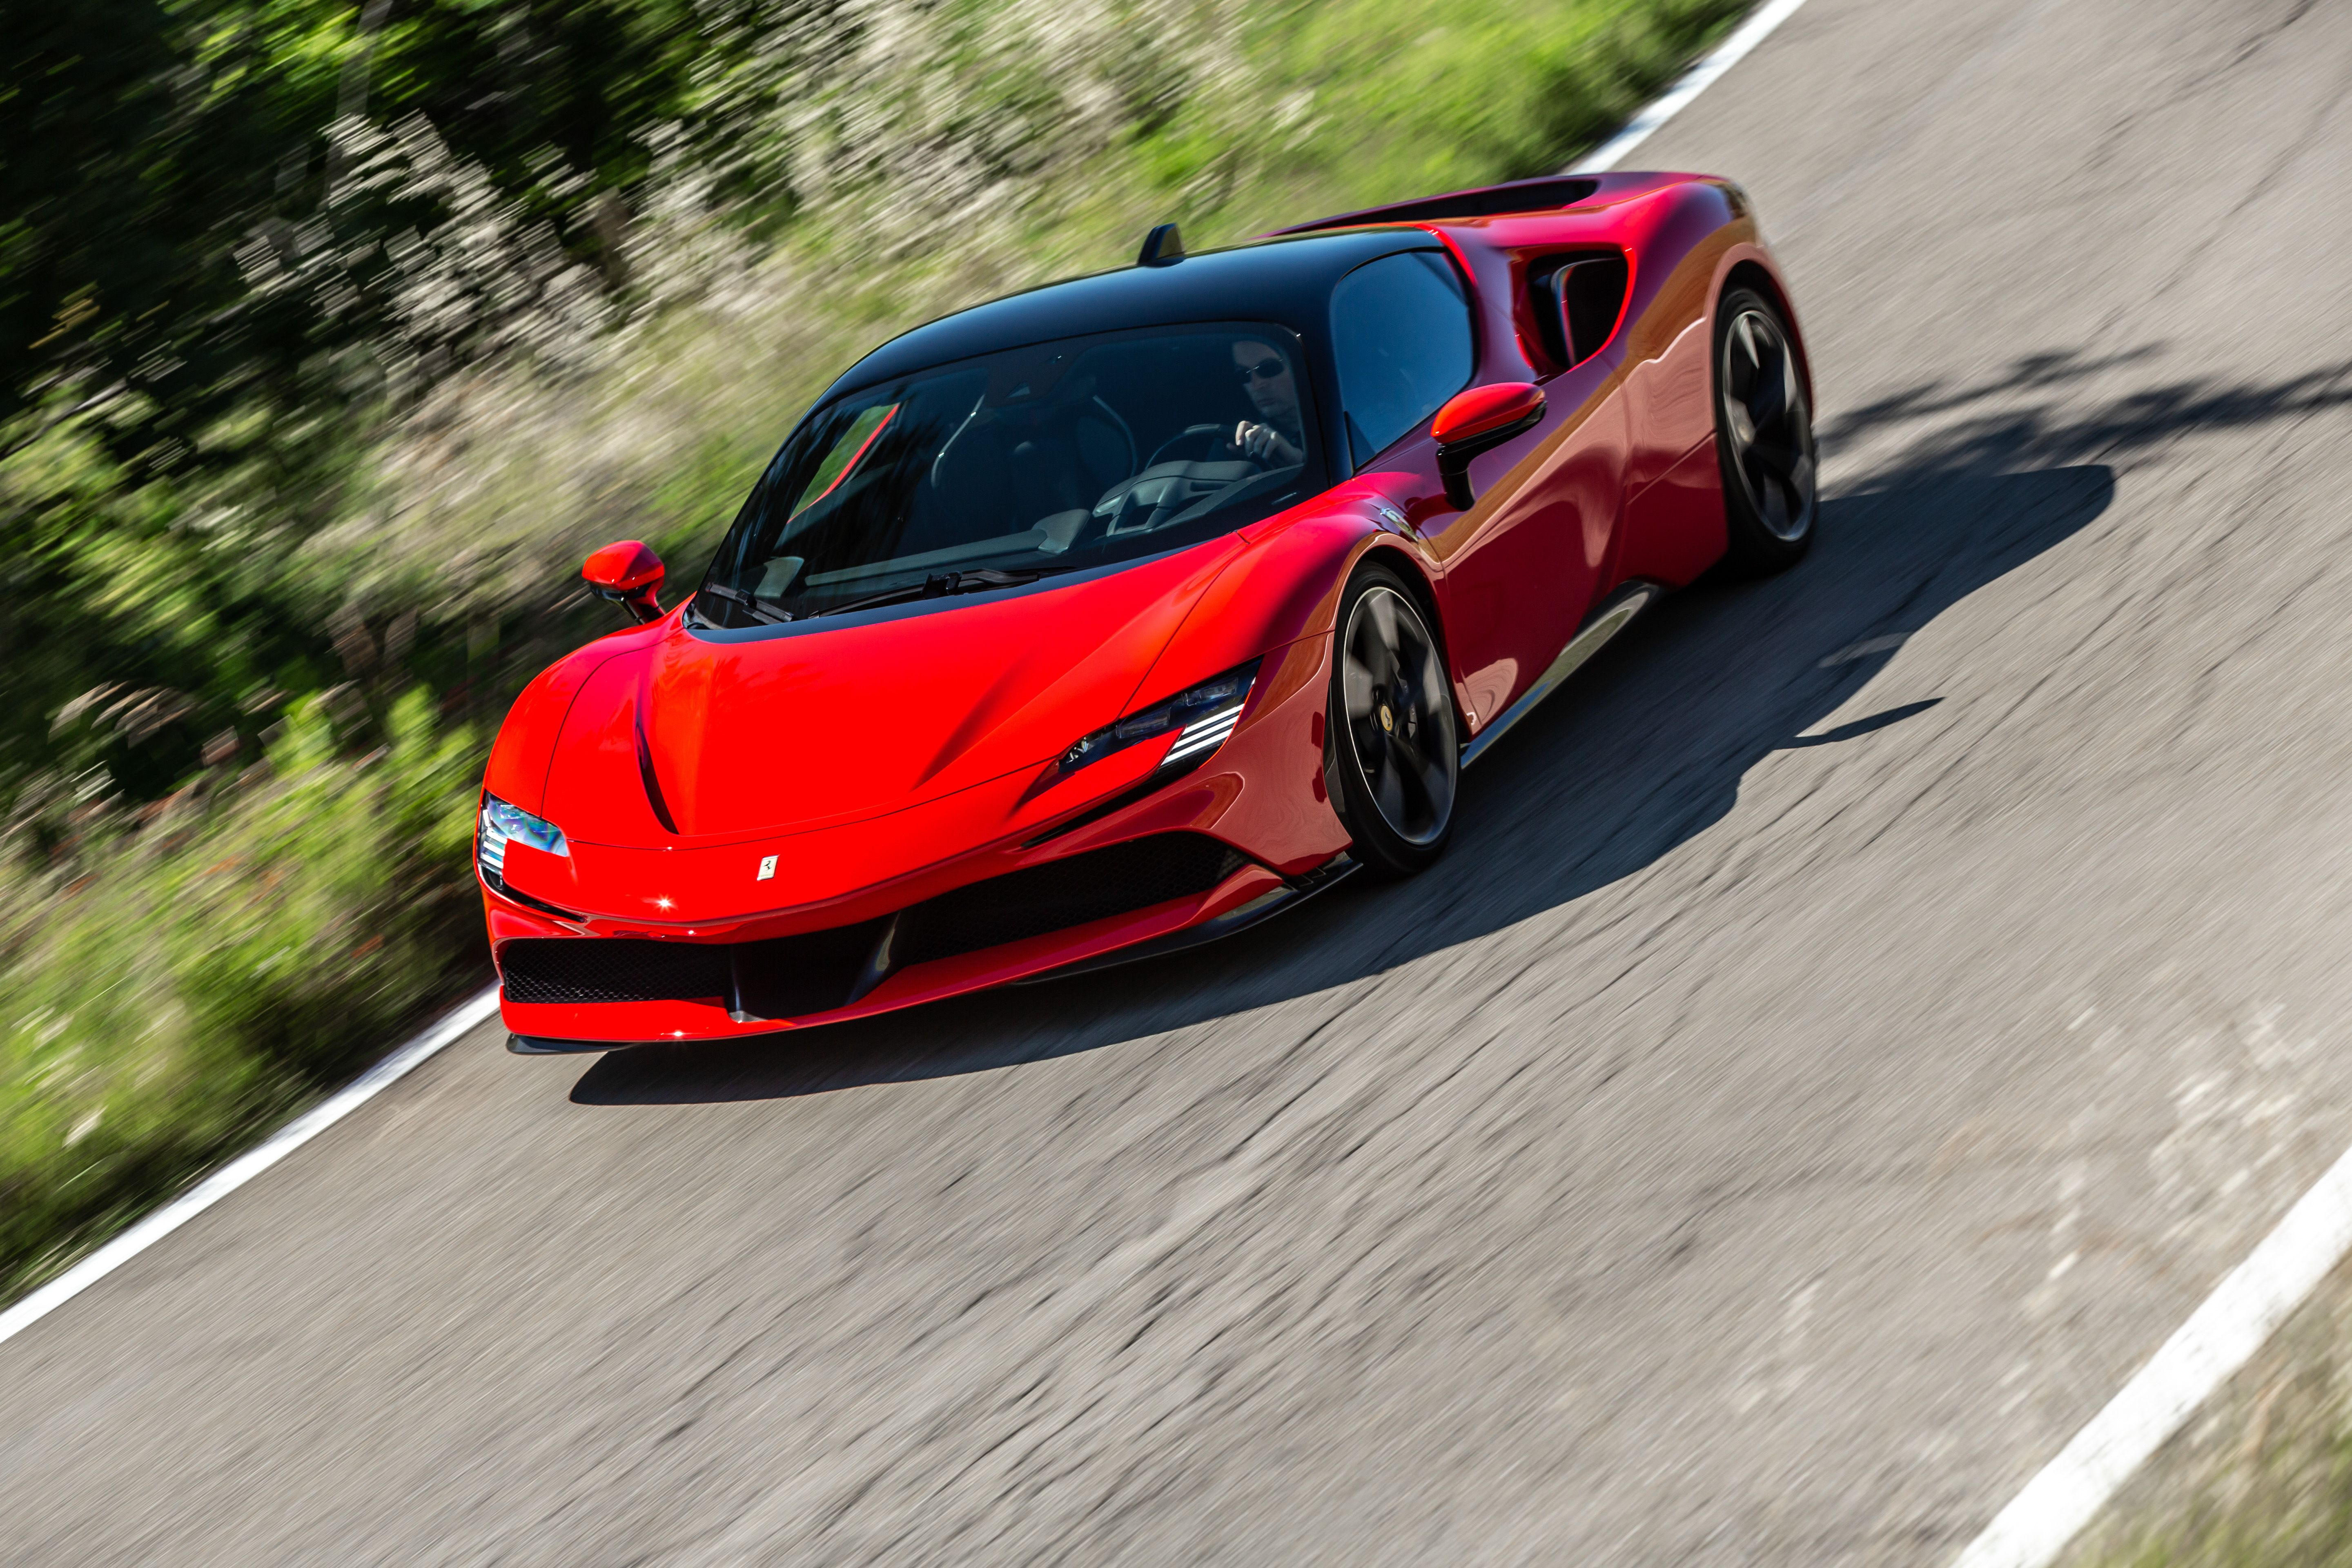 Best Hvac Systems 2021 The 2021 Ferrari SF90 Stradale Hypercar Goes from Silent to Violent